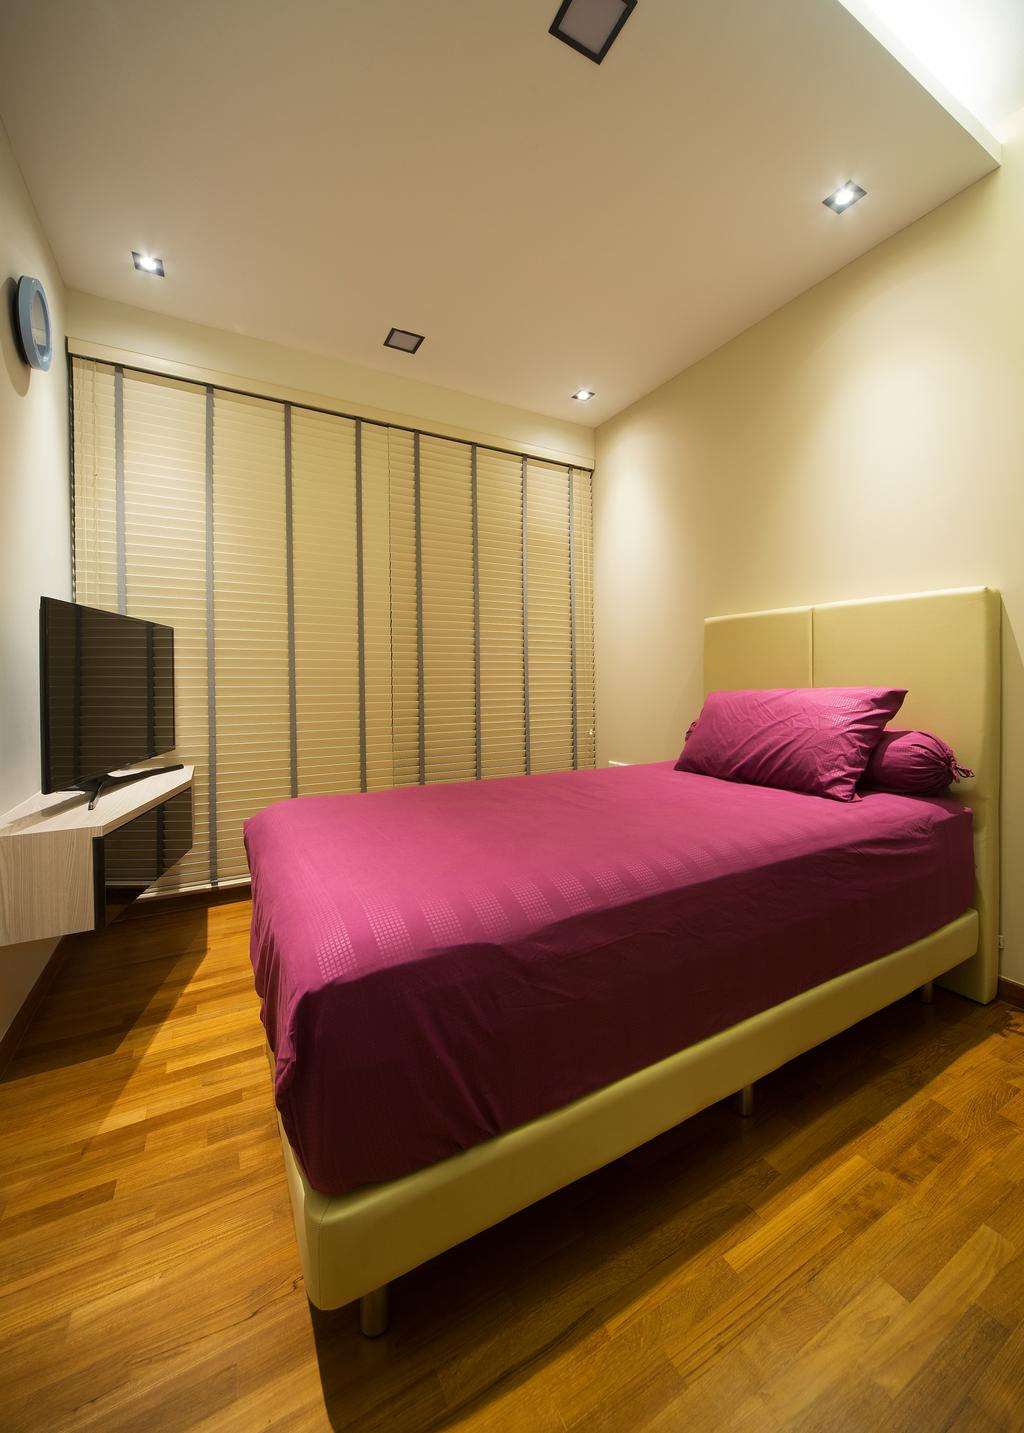 Transitional, Condo, Bedroom, Skypark Residence, Interior Designer, Form & Space, Banister, Handrail, Staircase, Bed, Furniture